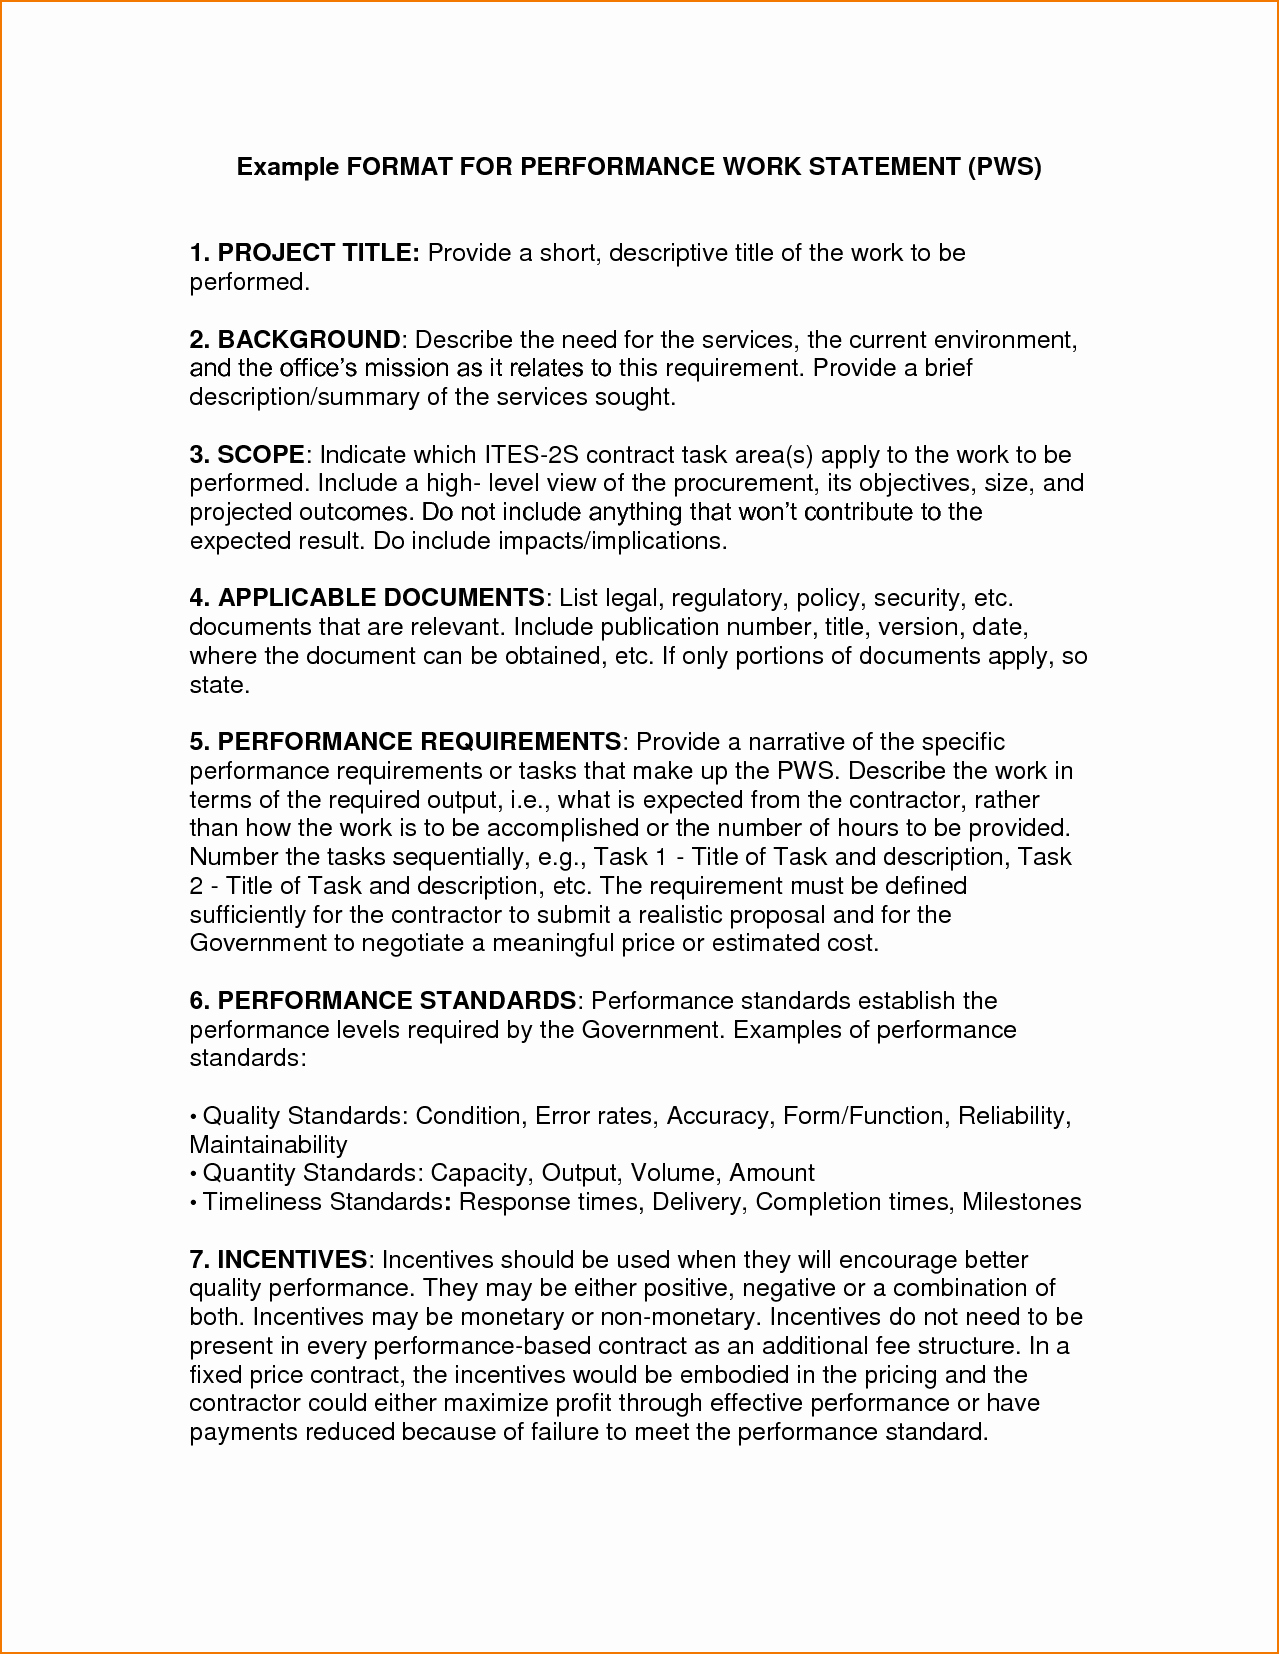 Example Of Statement Of Work Fresh 5 Example Statement Of Work